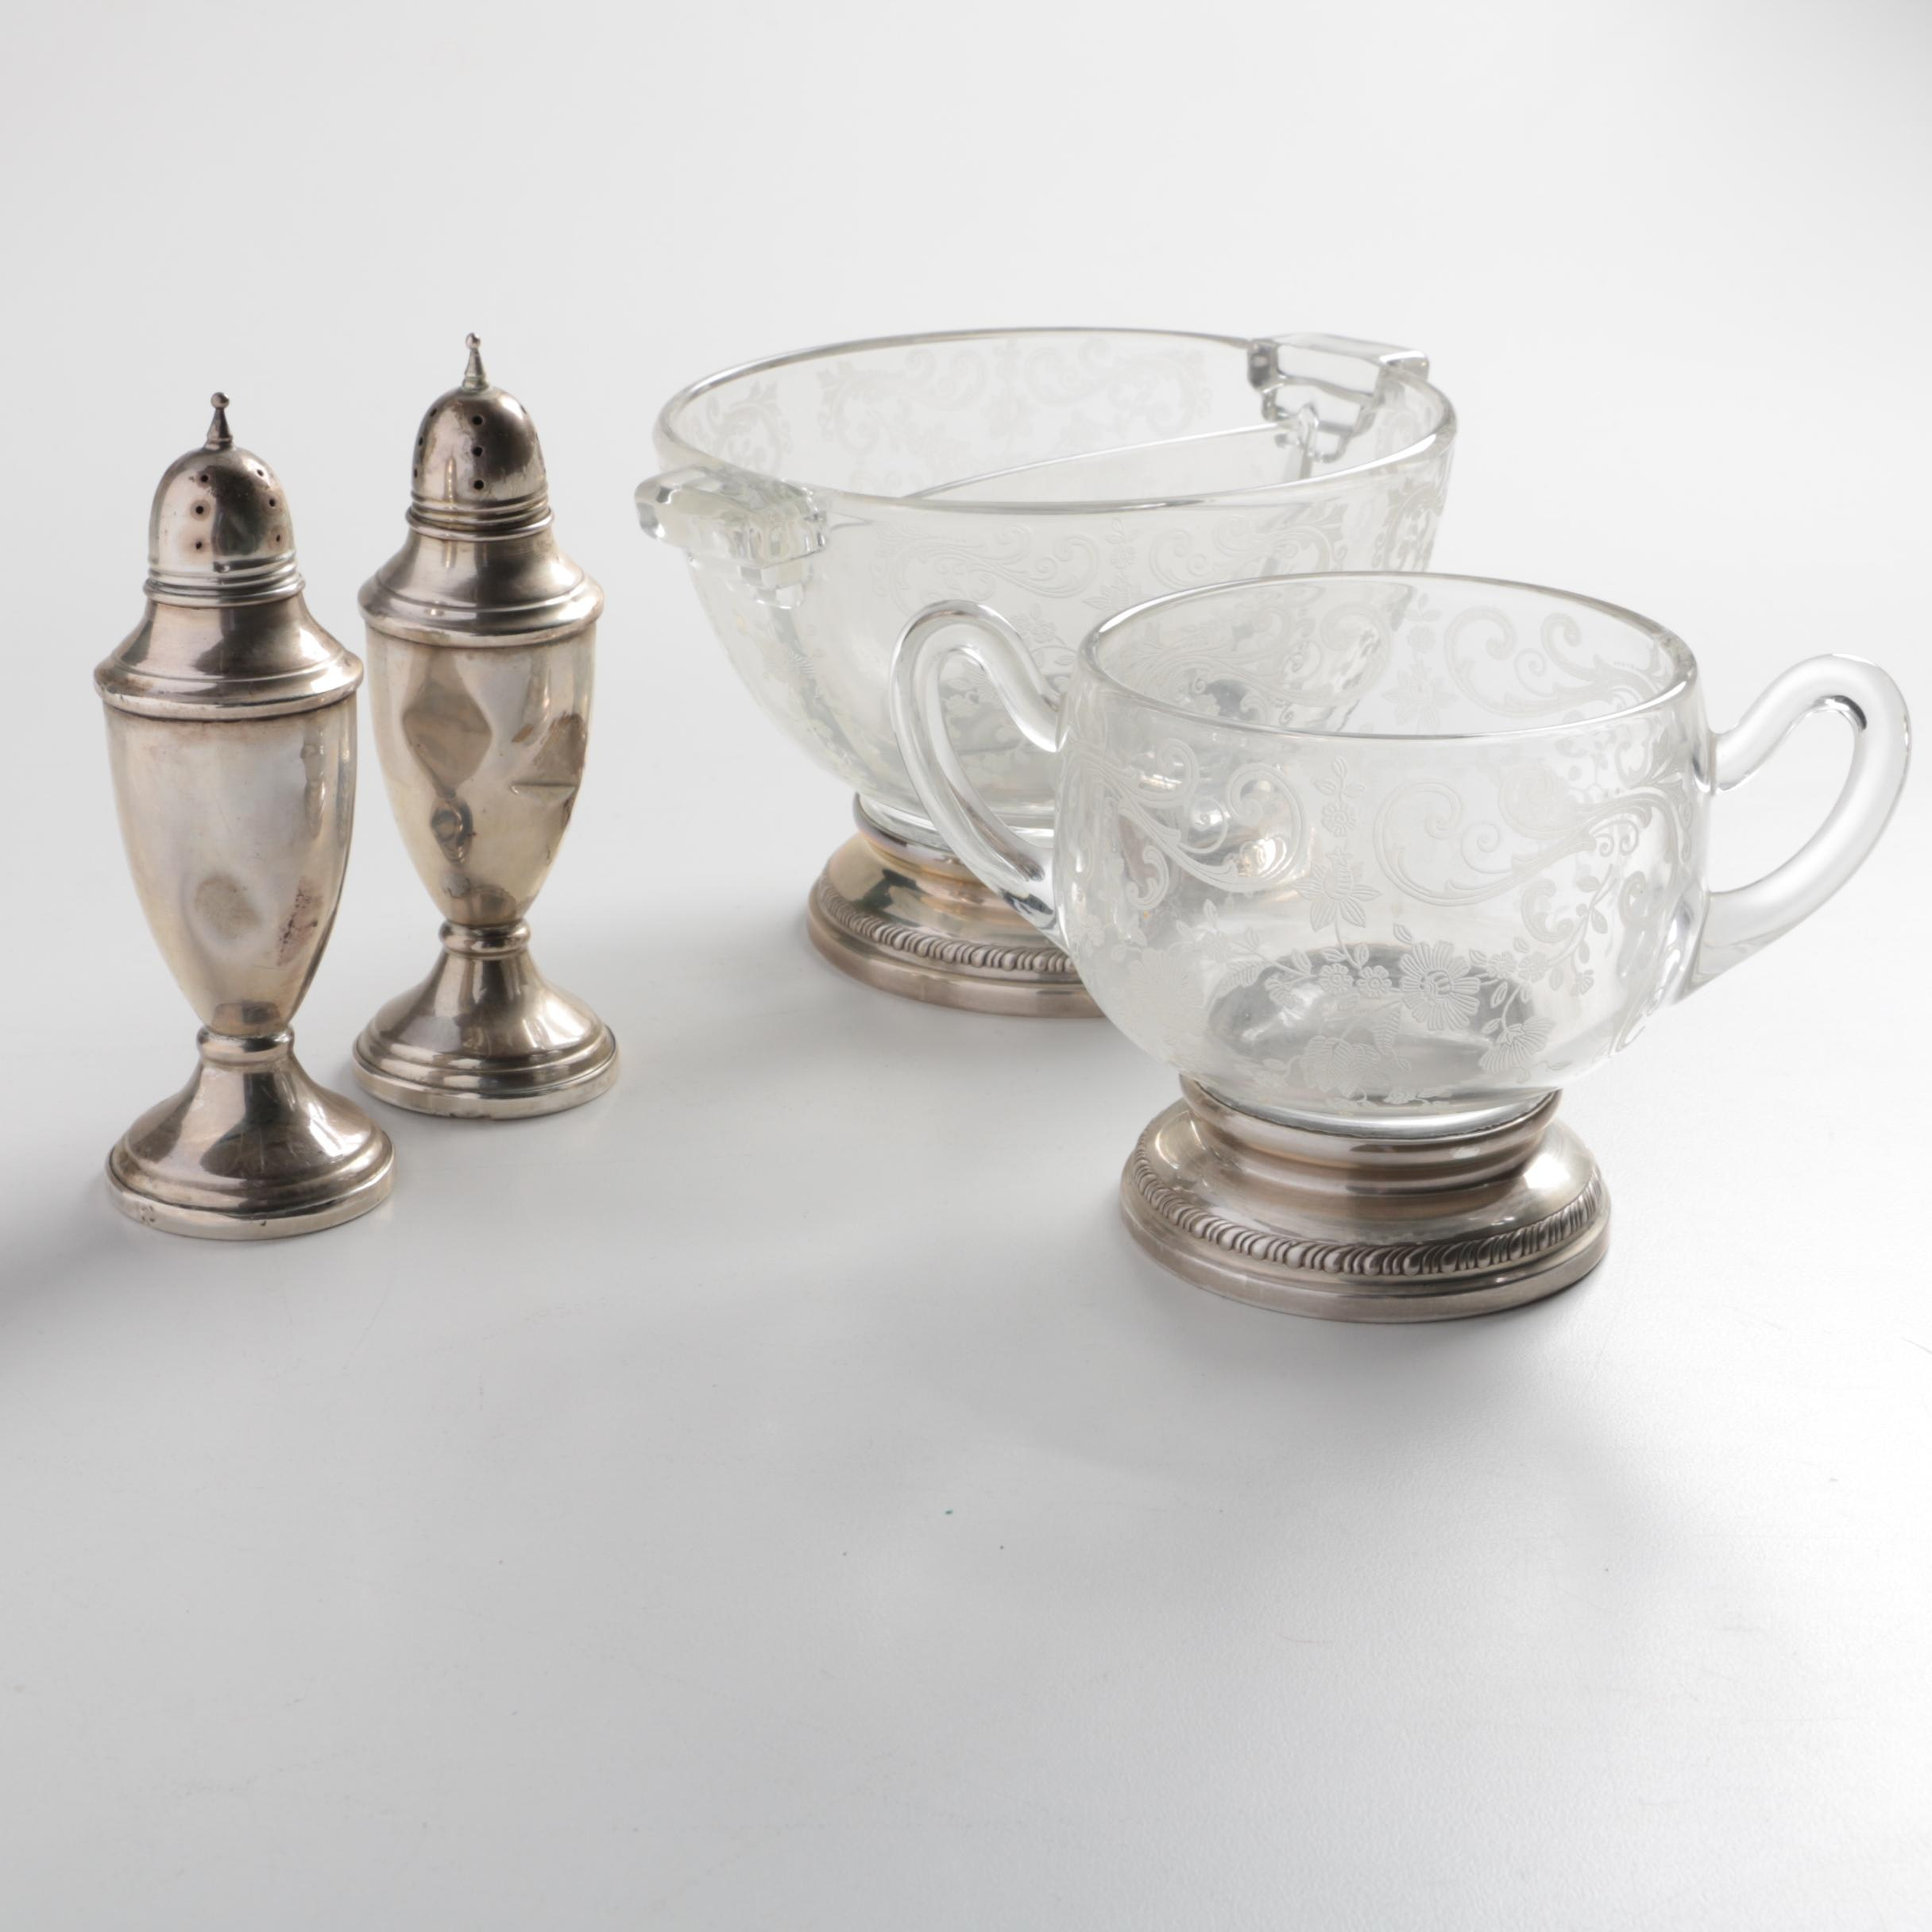 Sheffield Silver Co. Glass and Sterling Tableware with Weighted Shakers